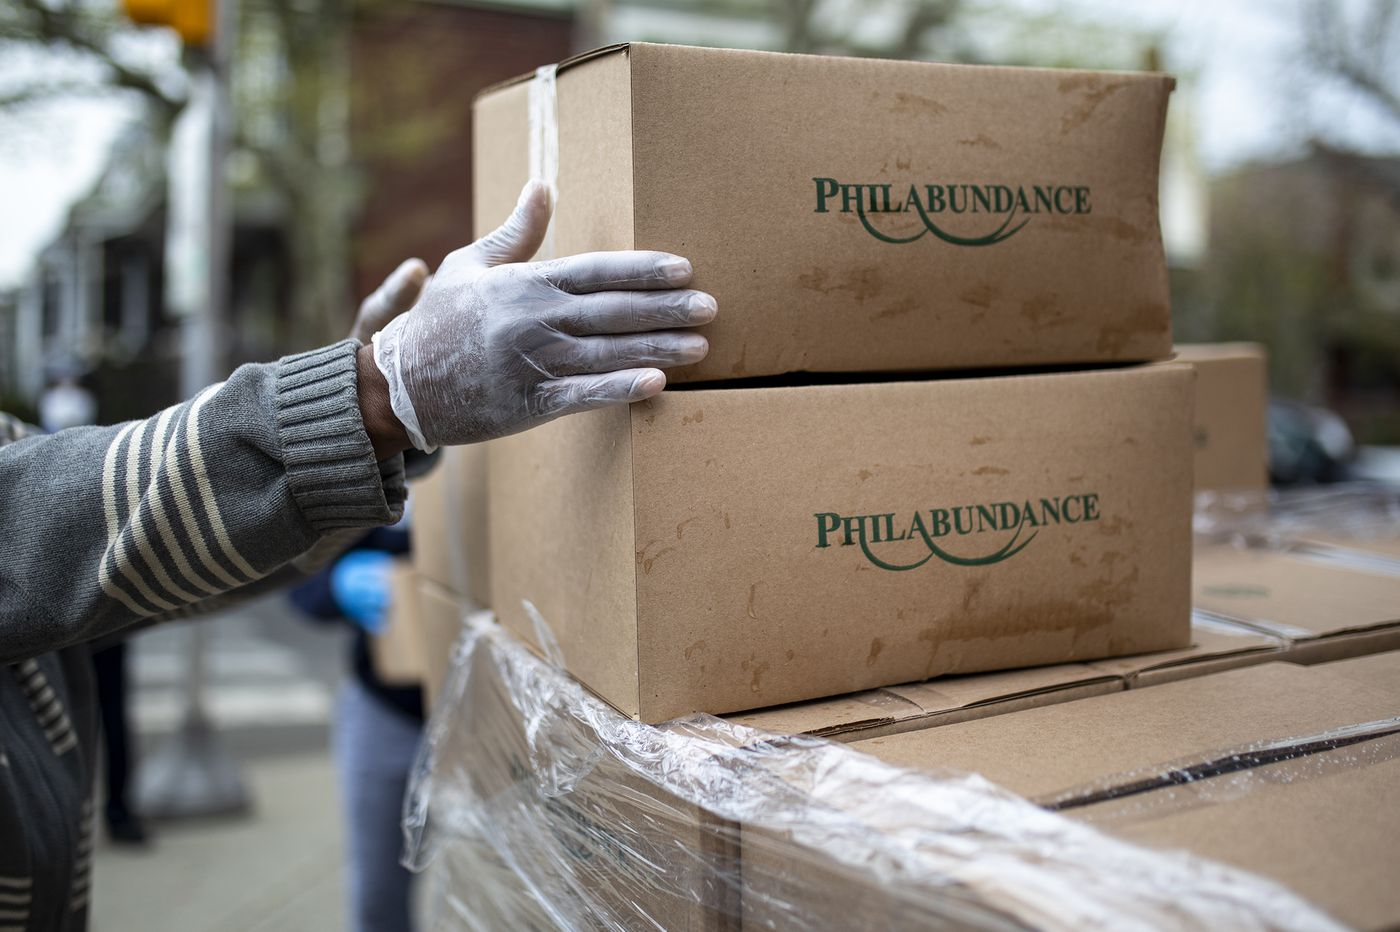 Philly hunger relief group Philabundance lost nearly $1 million in cyberattack